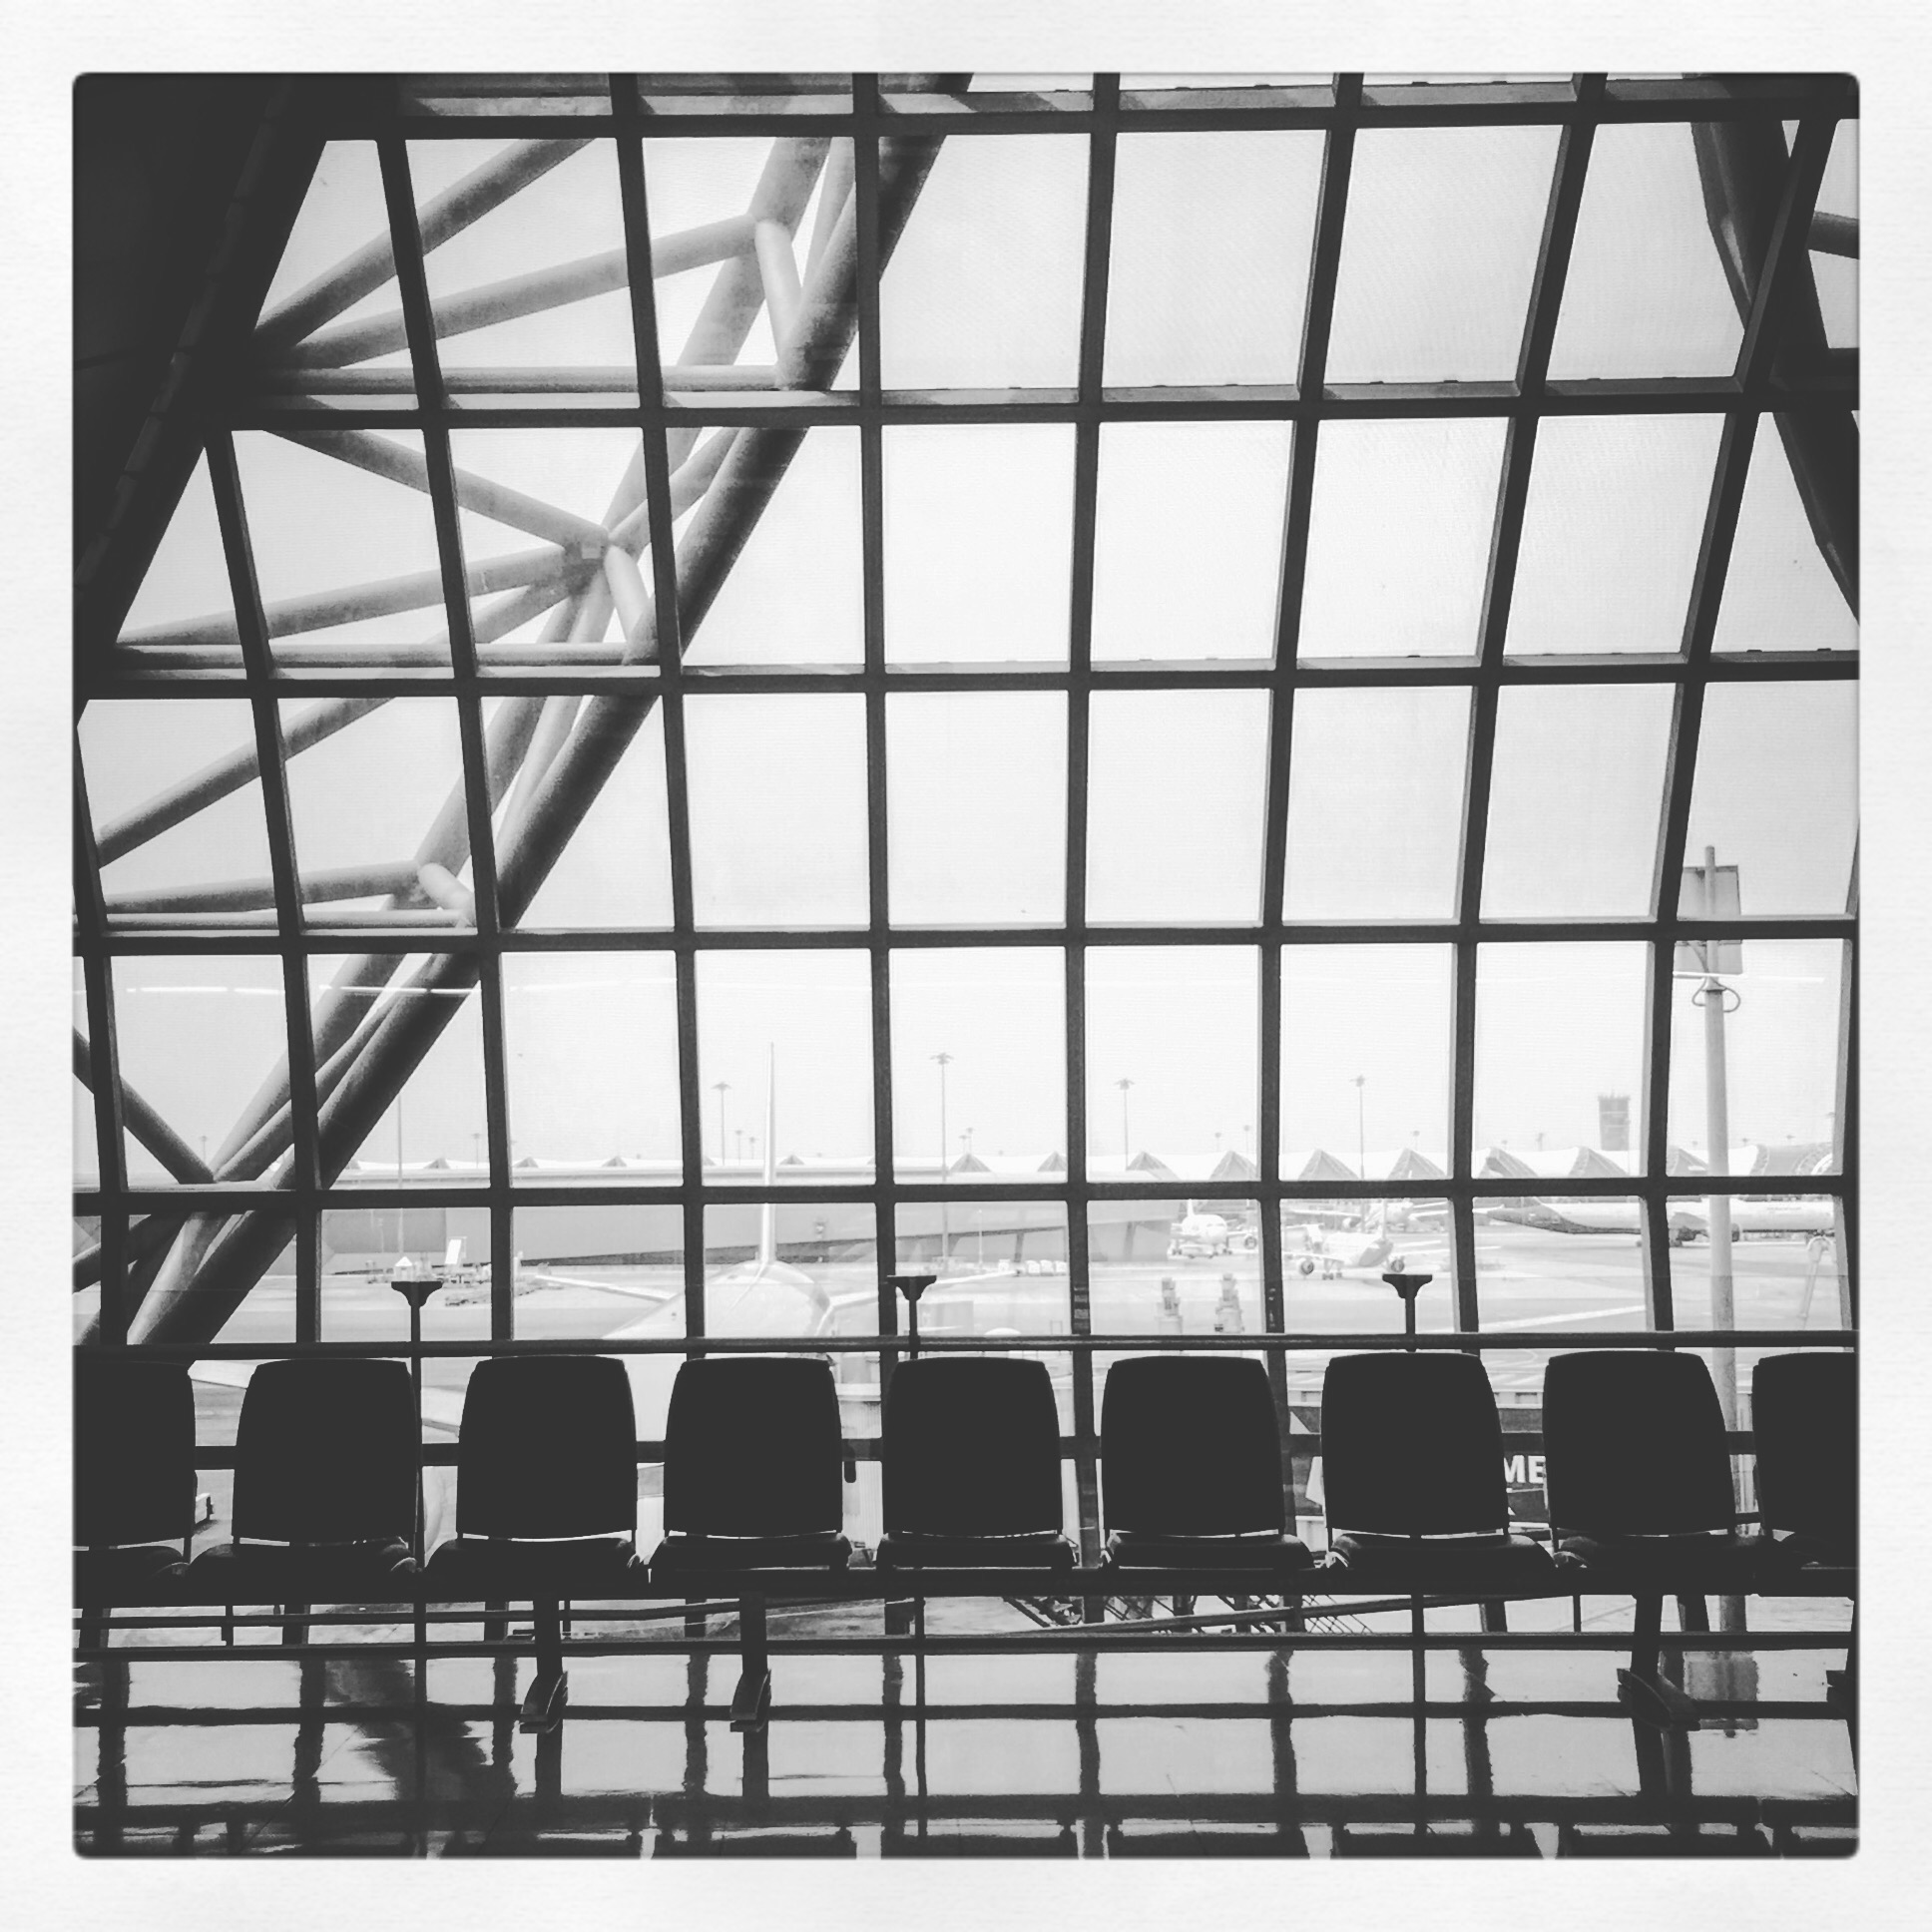 Day 1796. airport seating…